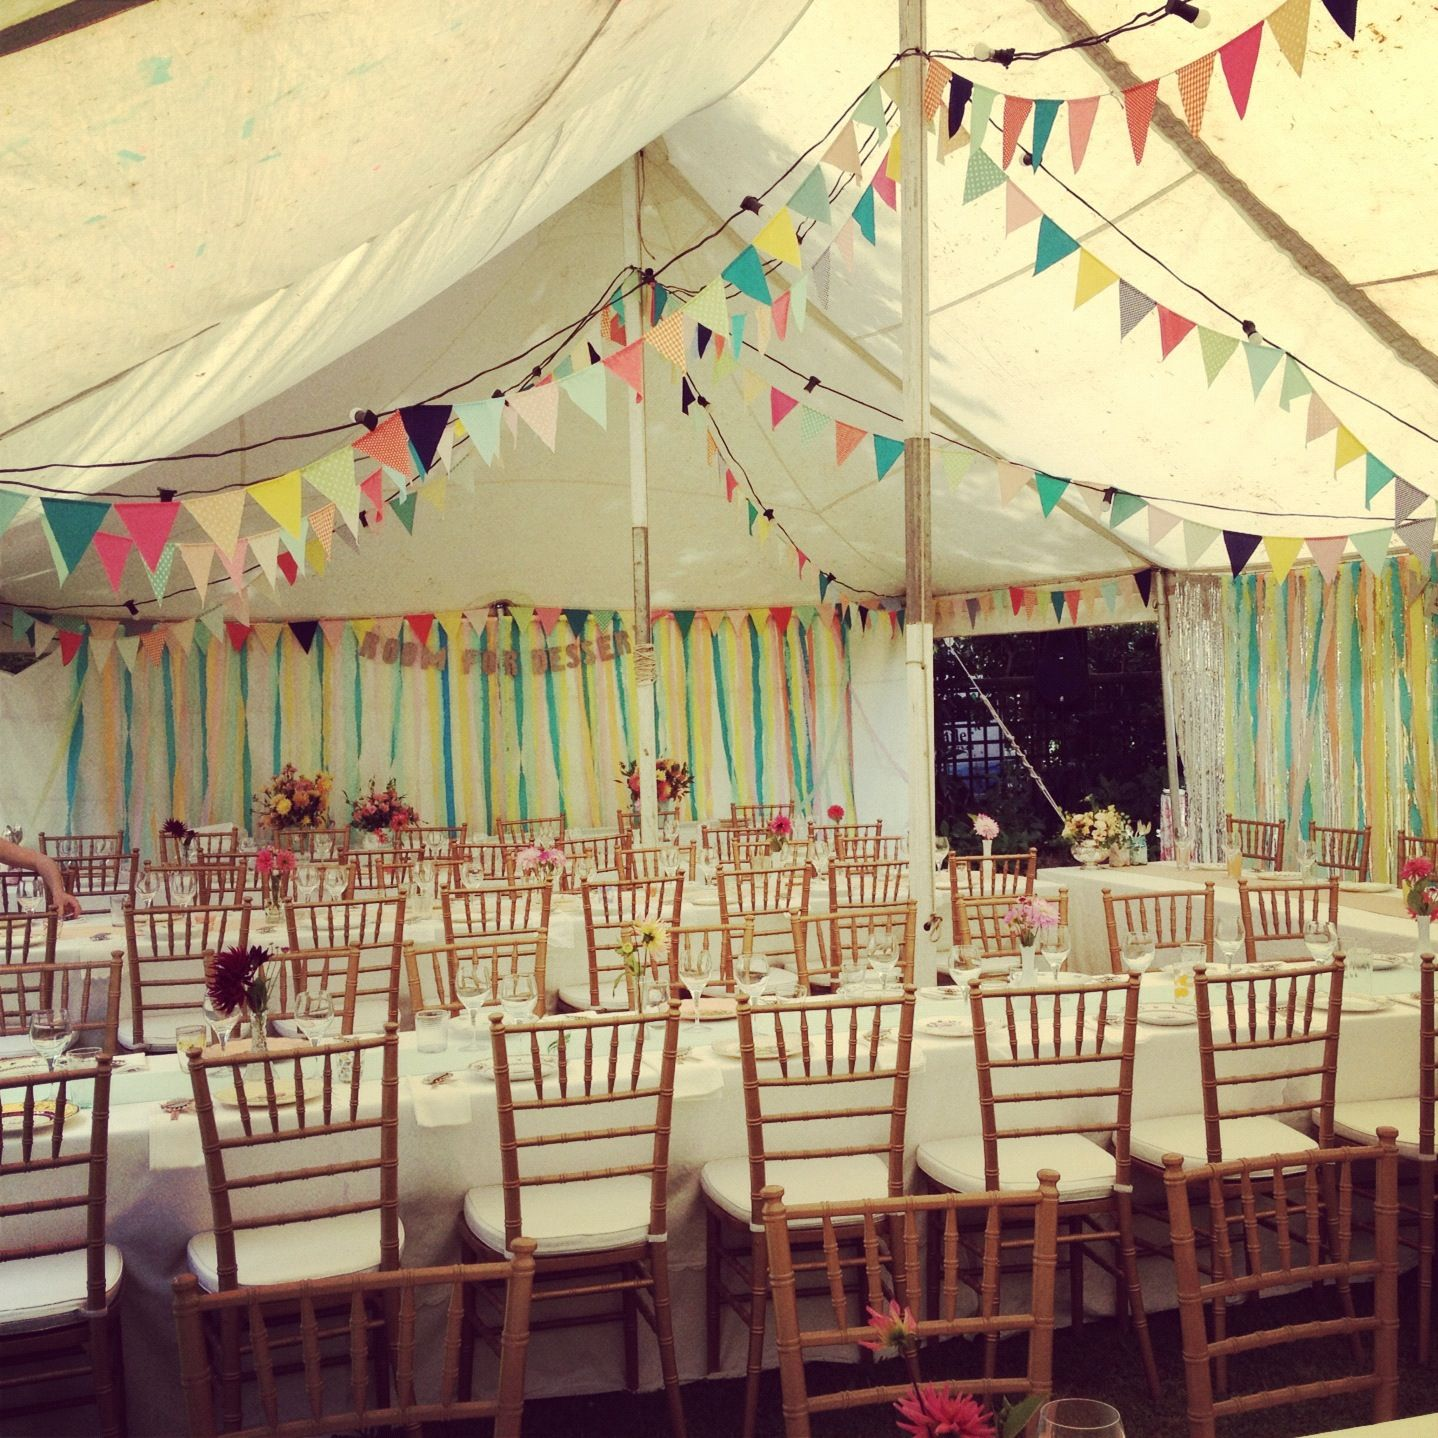 wedding decoration ideas south africa%0A Unlined marquee with bunting and ribbon decoration  Rustic  fete style  wedding or party